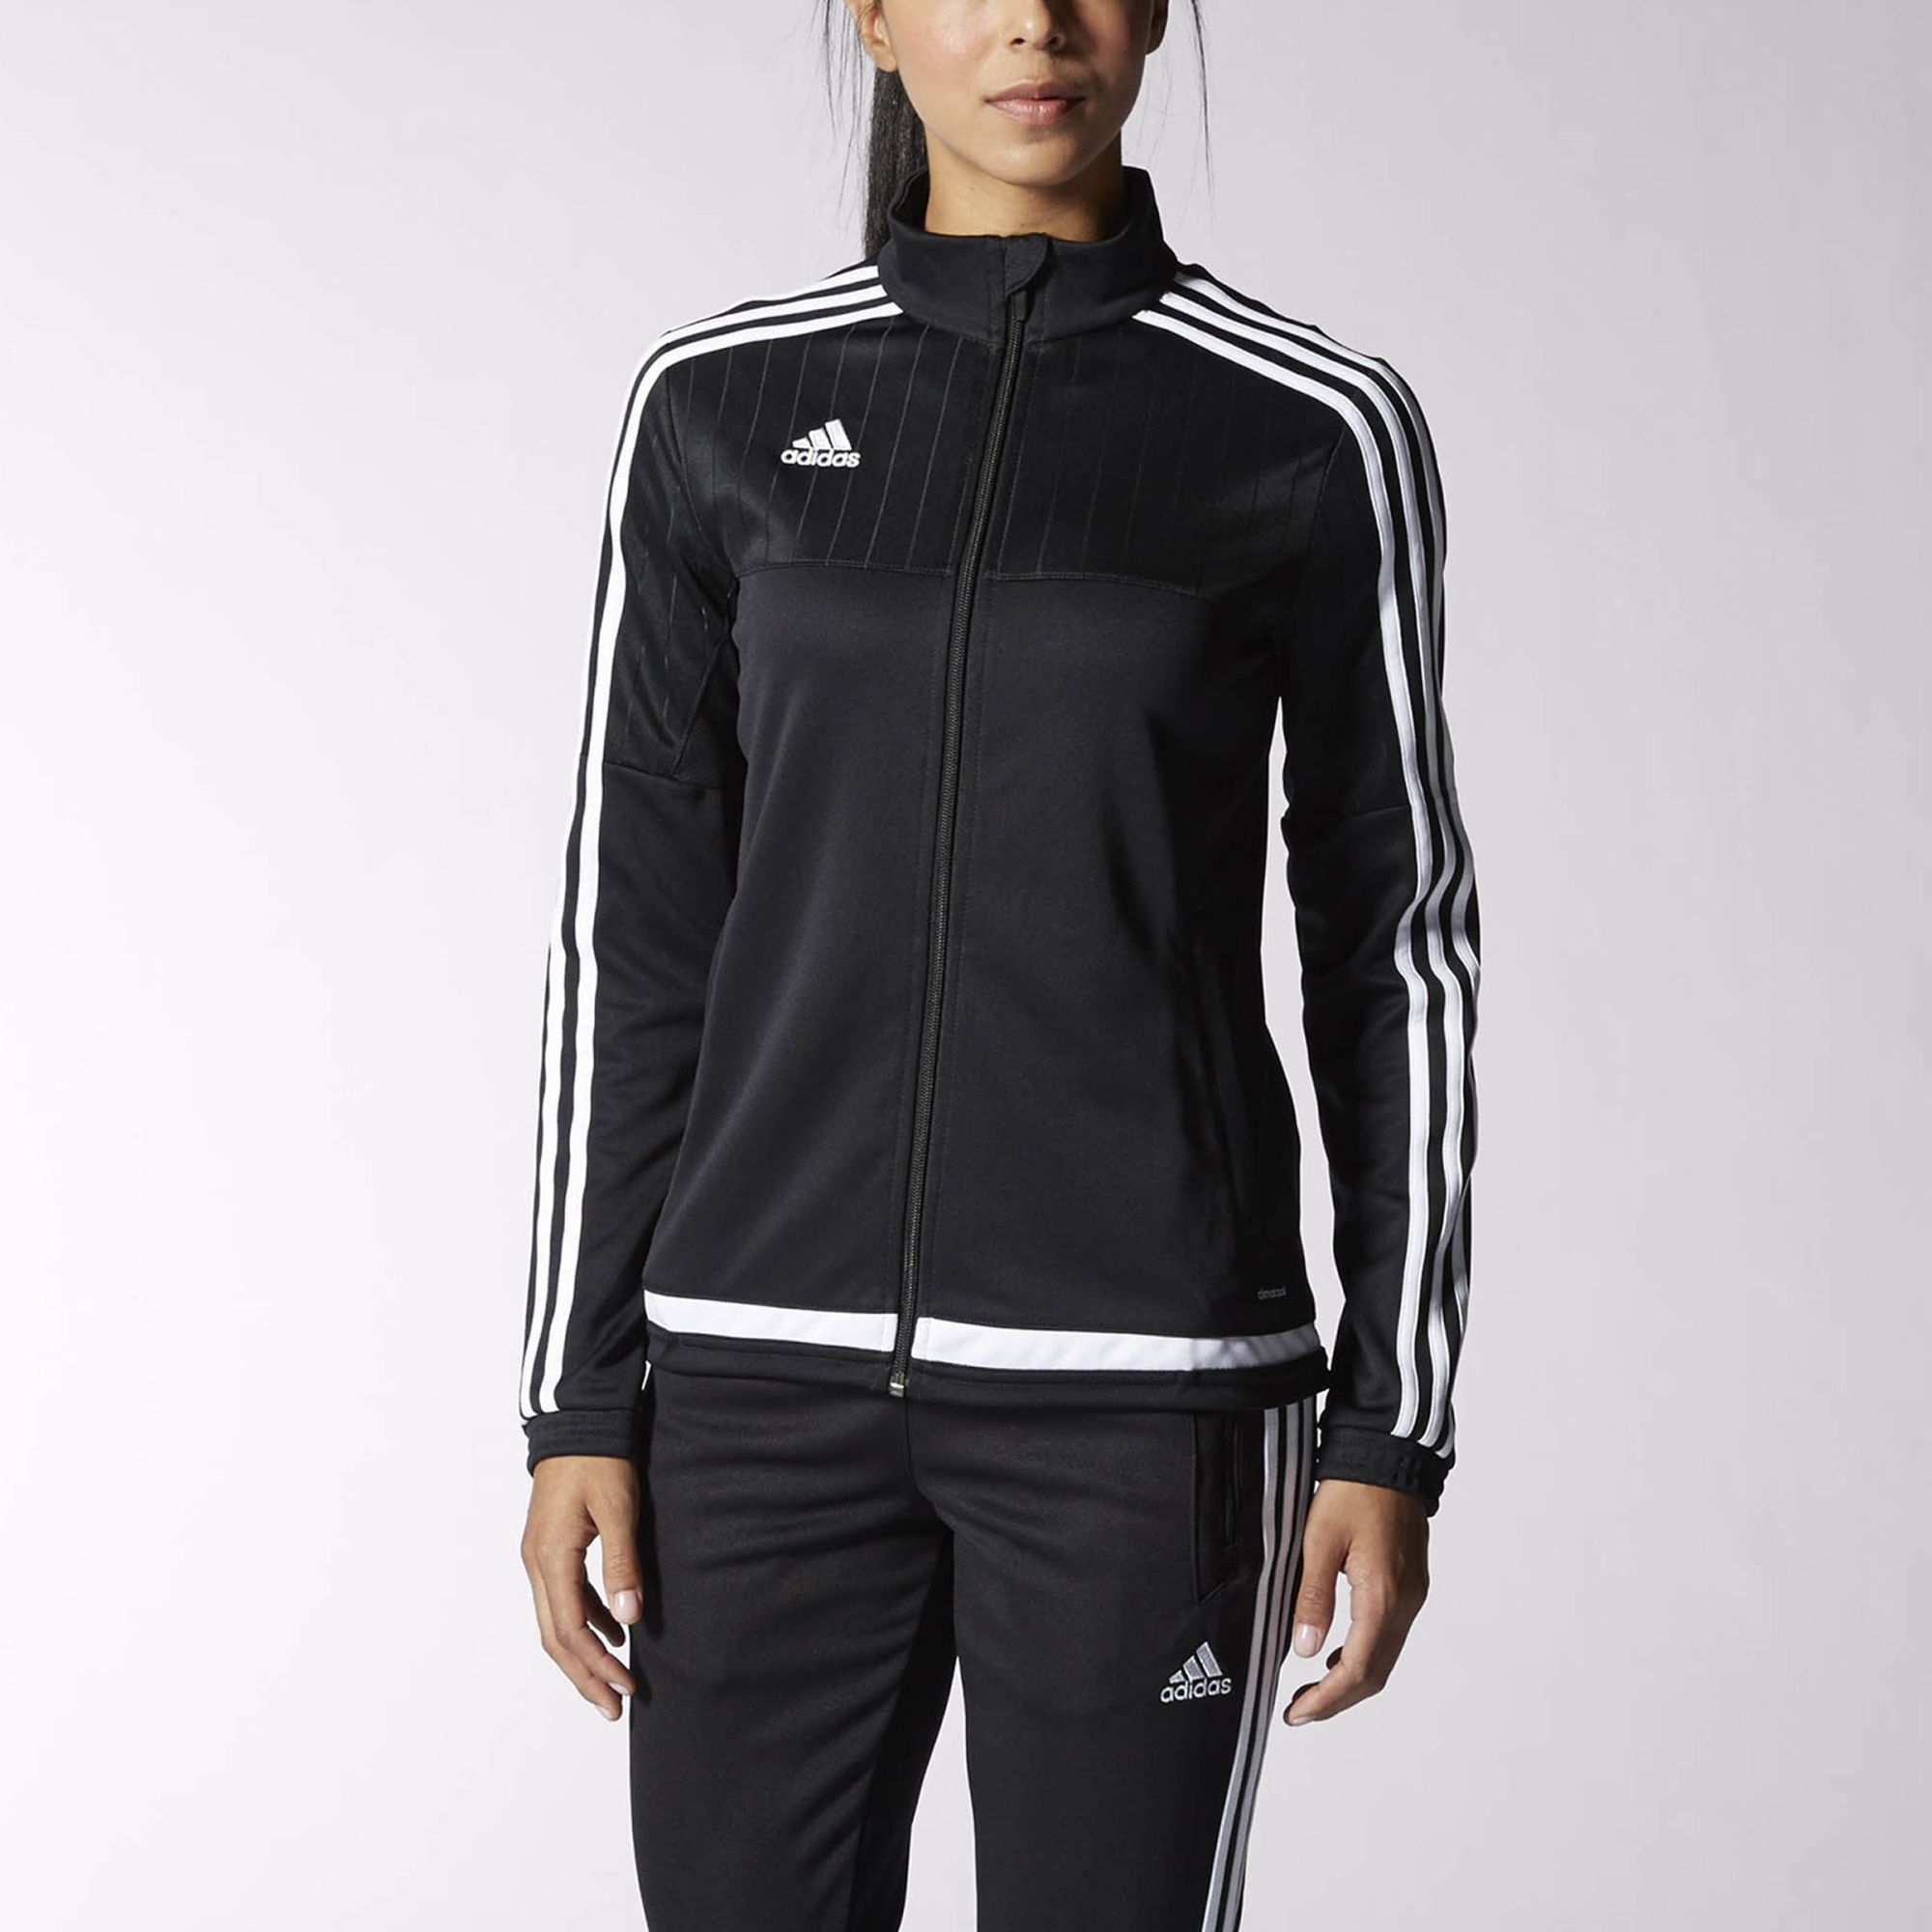 This women's soccer jacket keeps you covered when you're